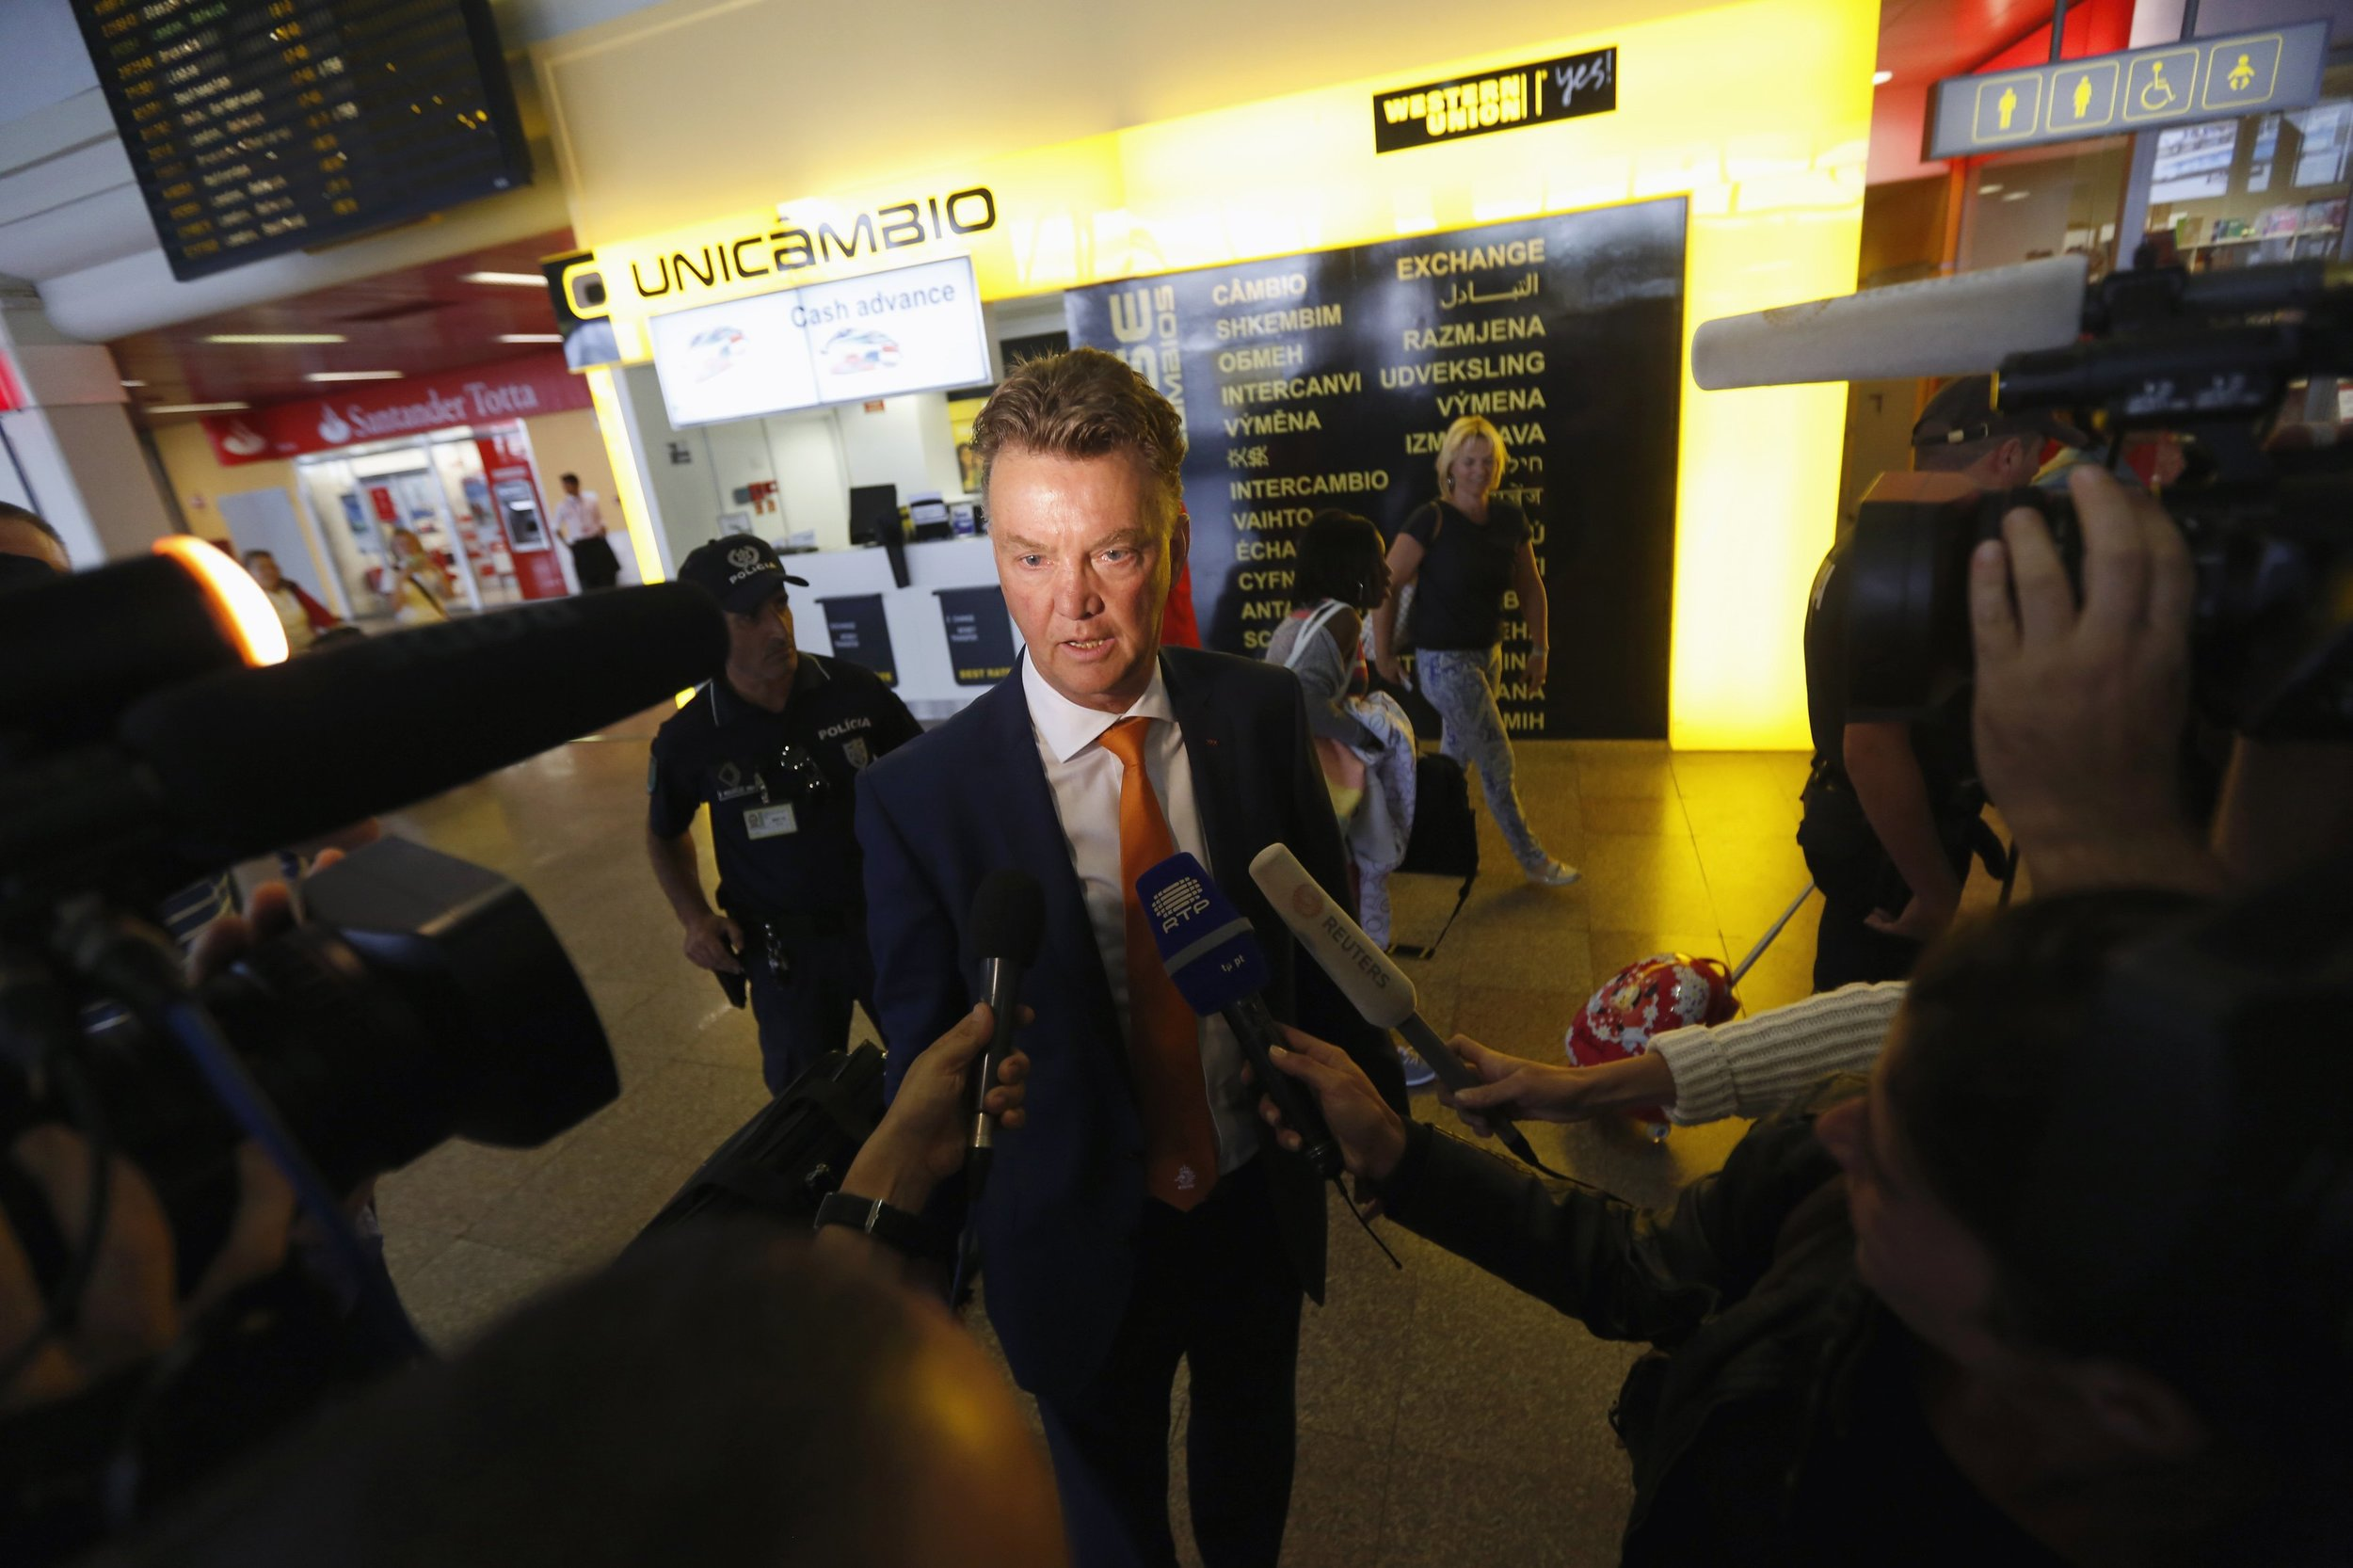 Louis van Gaal has never been a universally popular figure with the press and has had to constantly battle for a positive image. Here, as head coach of the Netherlannds, he speaks with journalists ahead of the 2014 World Cup in Brazil. Image supplied by Action Images /Rafael Marchante